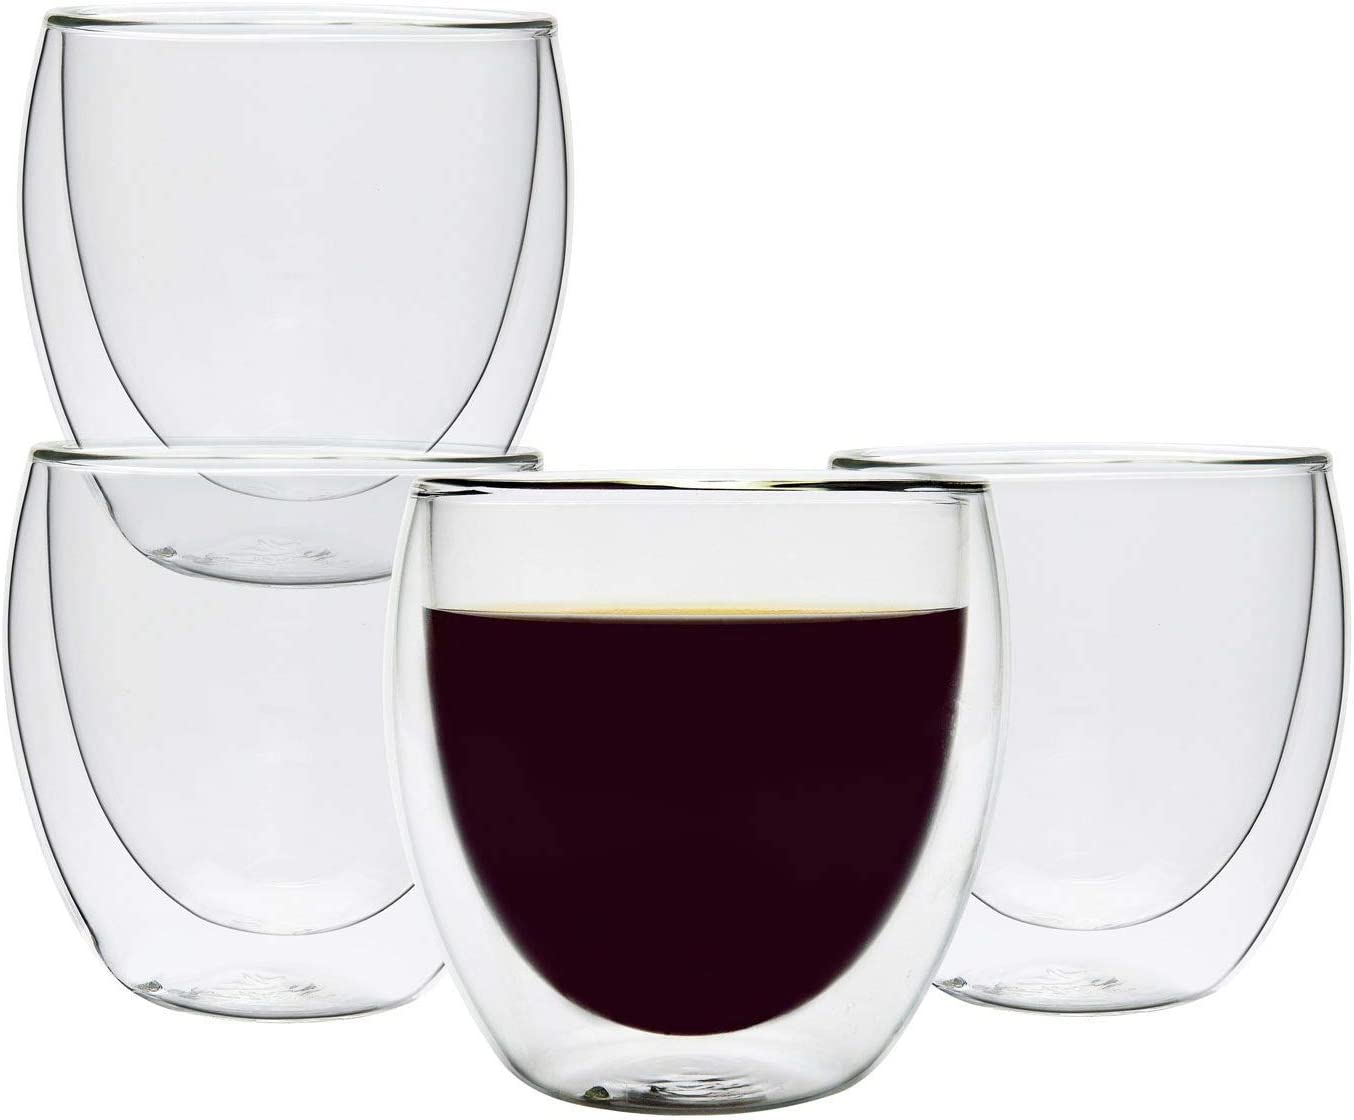 Double Wall Cups Glass 8.5 OZ - Set of 4, Insulated Thermal Mugs Glasses For Tea, Coffee, Latte, Cappucino, Cafe, Milk